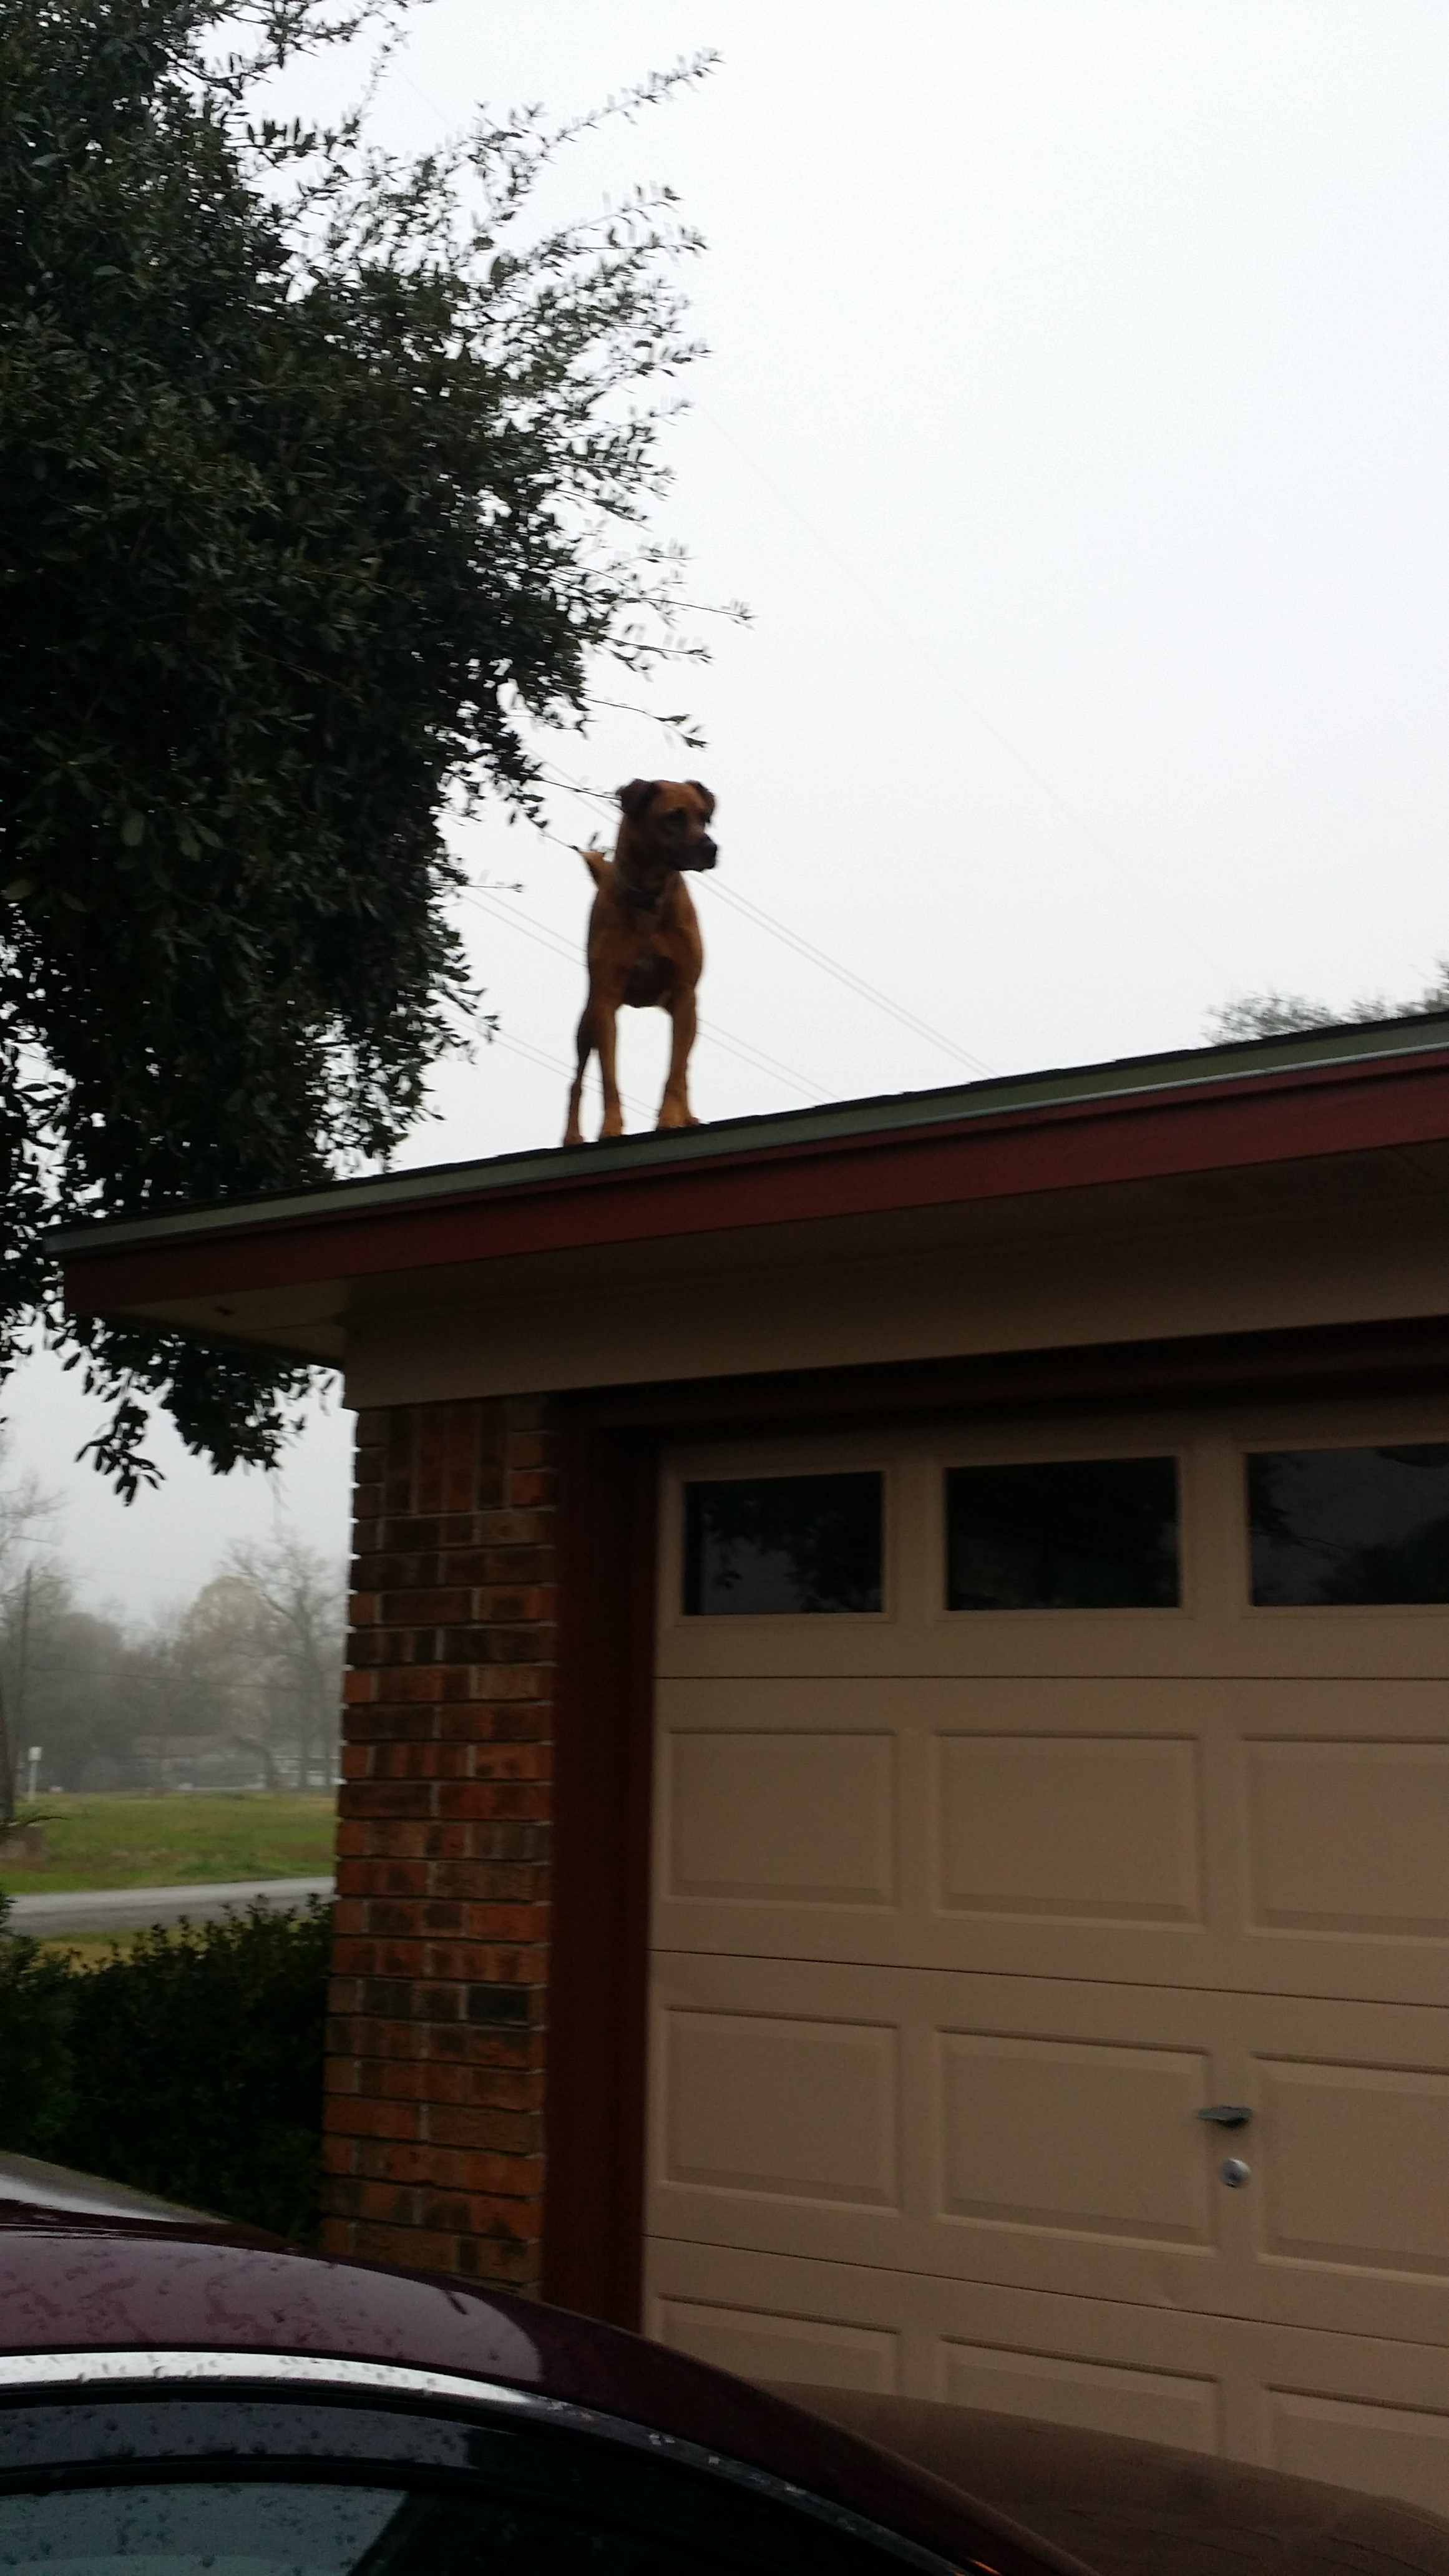 Family Makes Sign To Explain Why Their Dog Is On The Roof